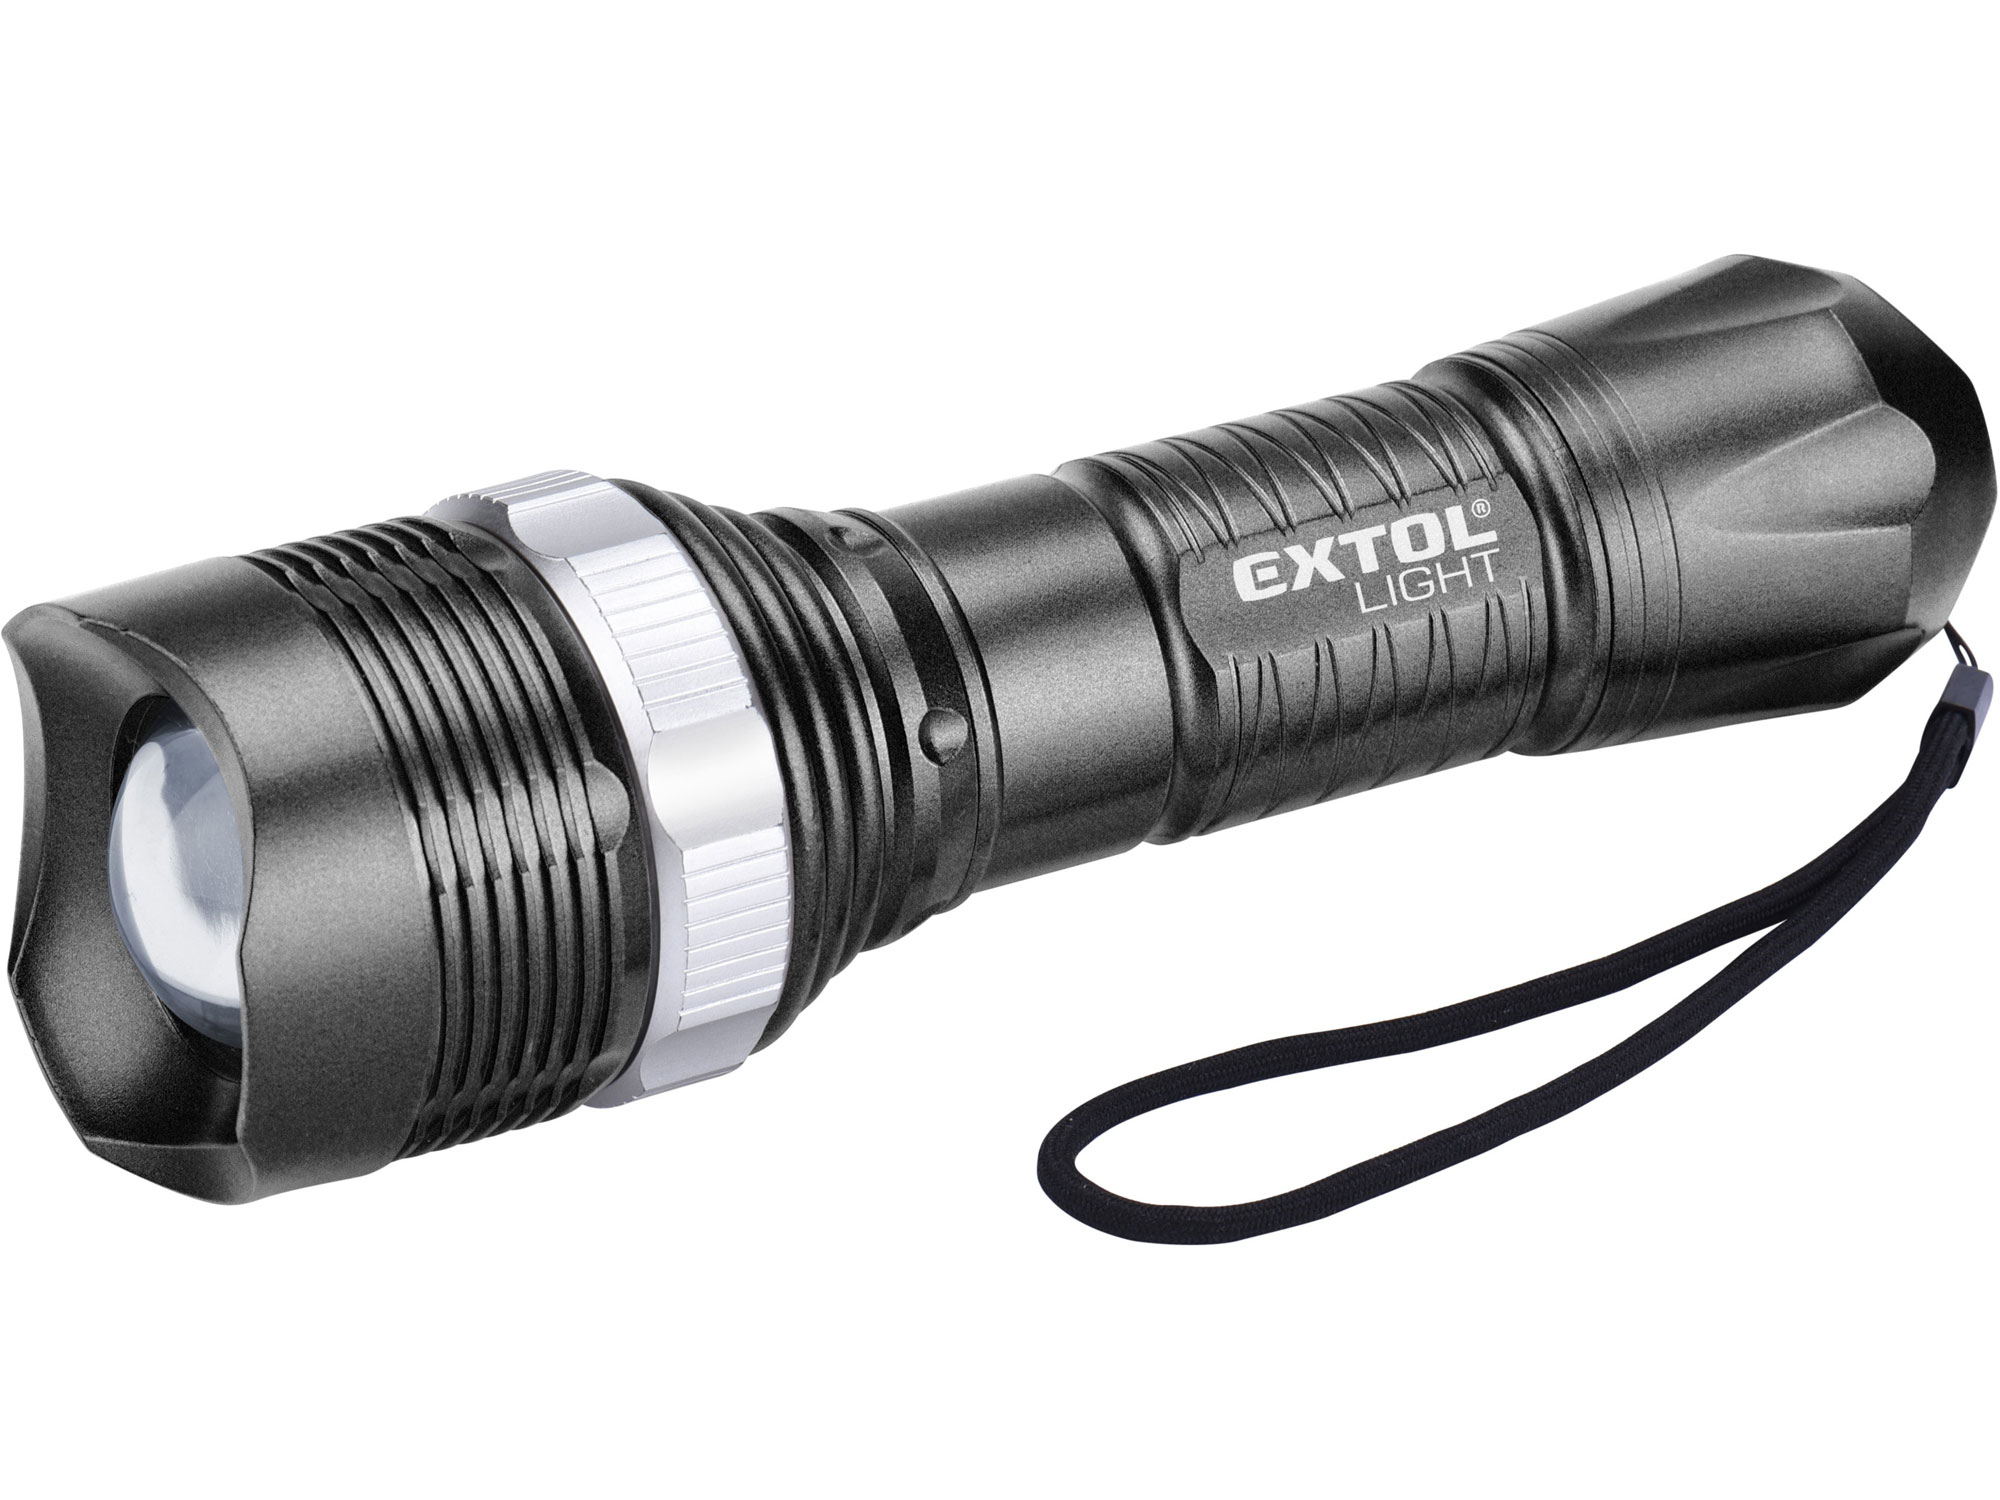 Svítilna 40lm, ZOOM, 1W LED, ABS plast EXTOL LIGHT 43116